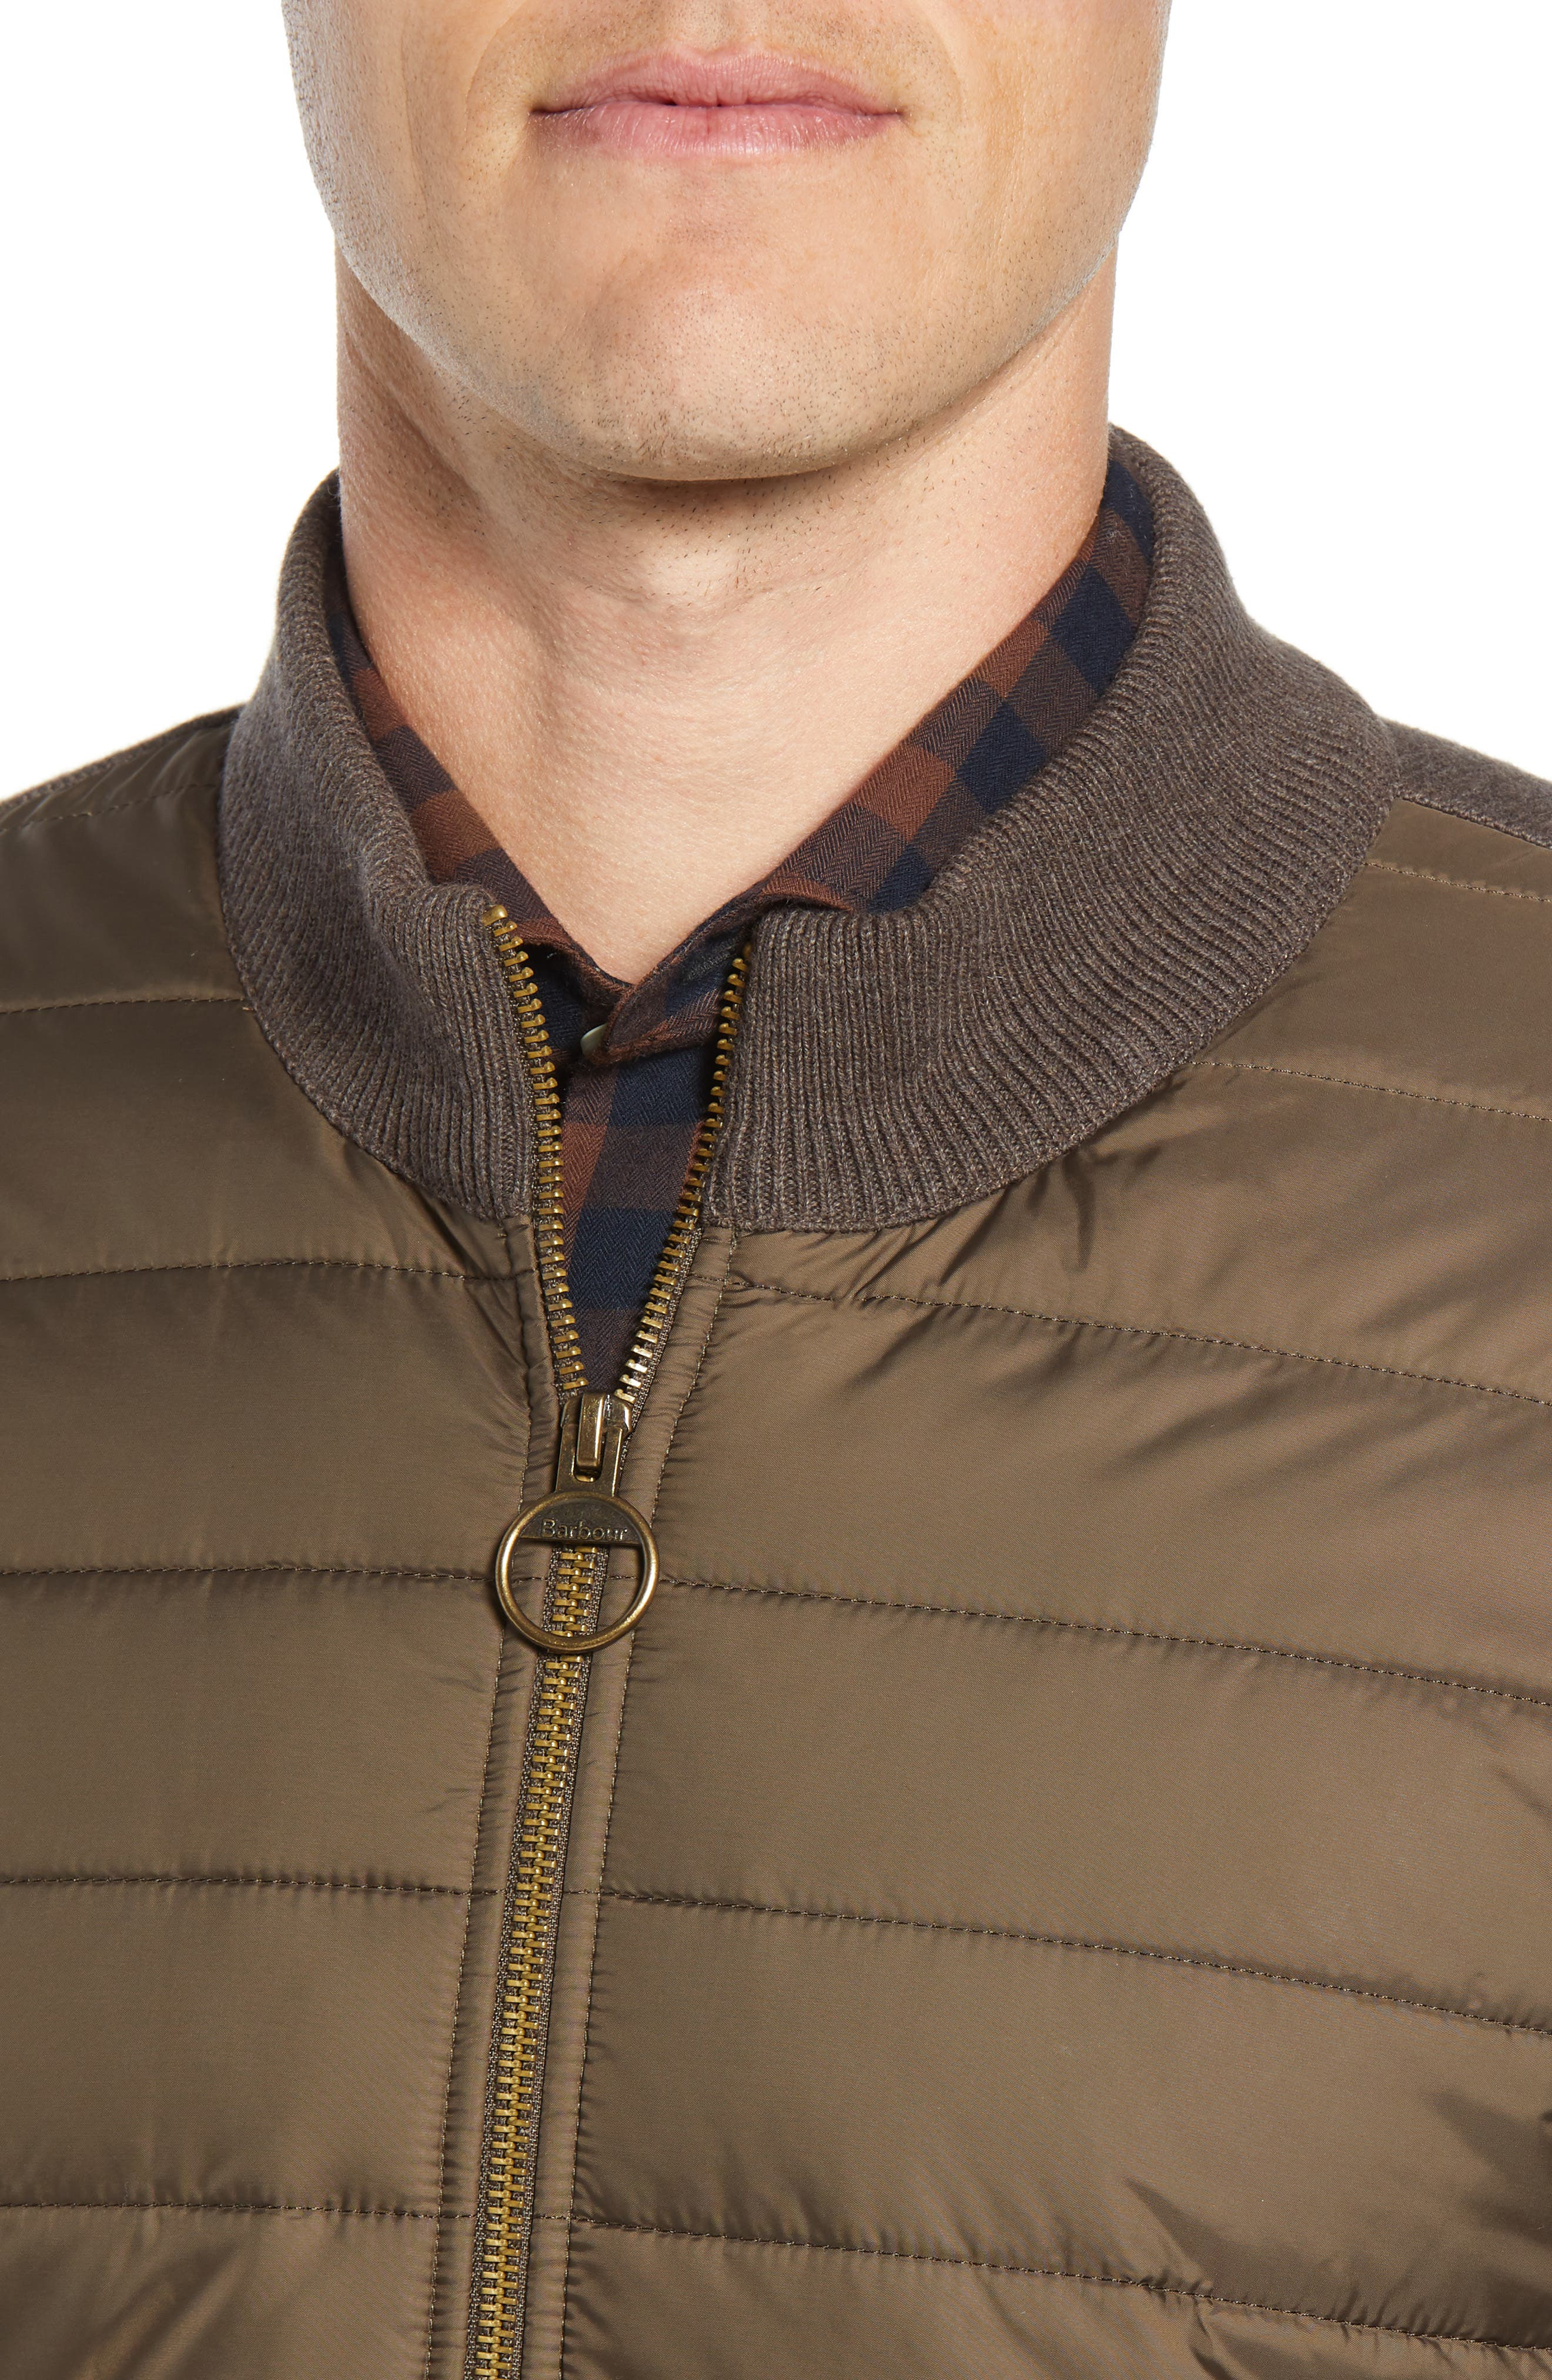 Carn Baffle Front Knit Jacket,                             Alternate thumbnail 4, color,                             CLAY